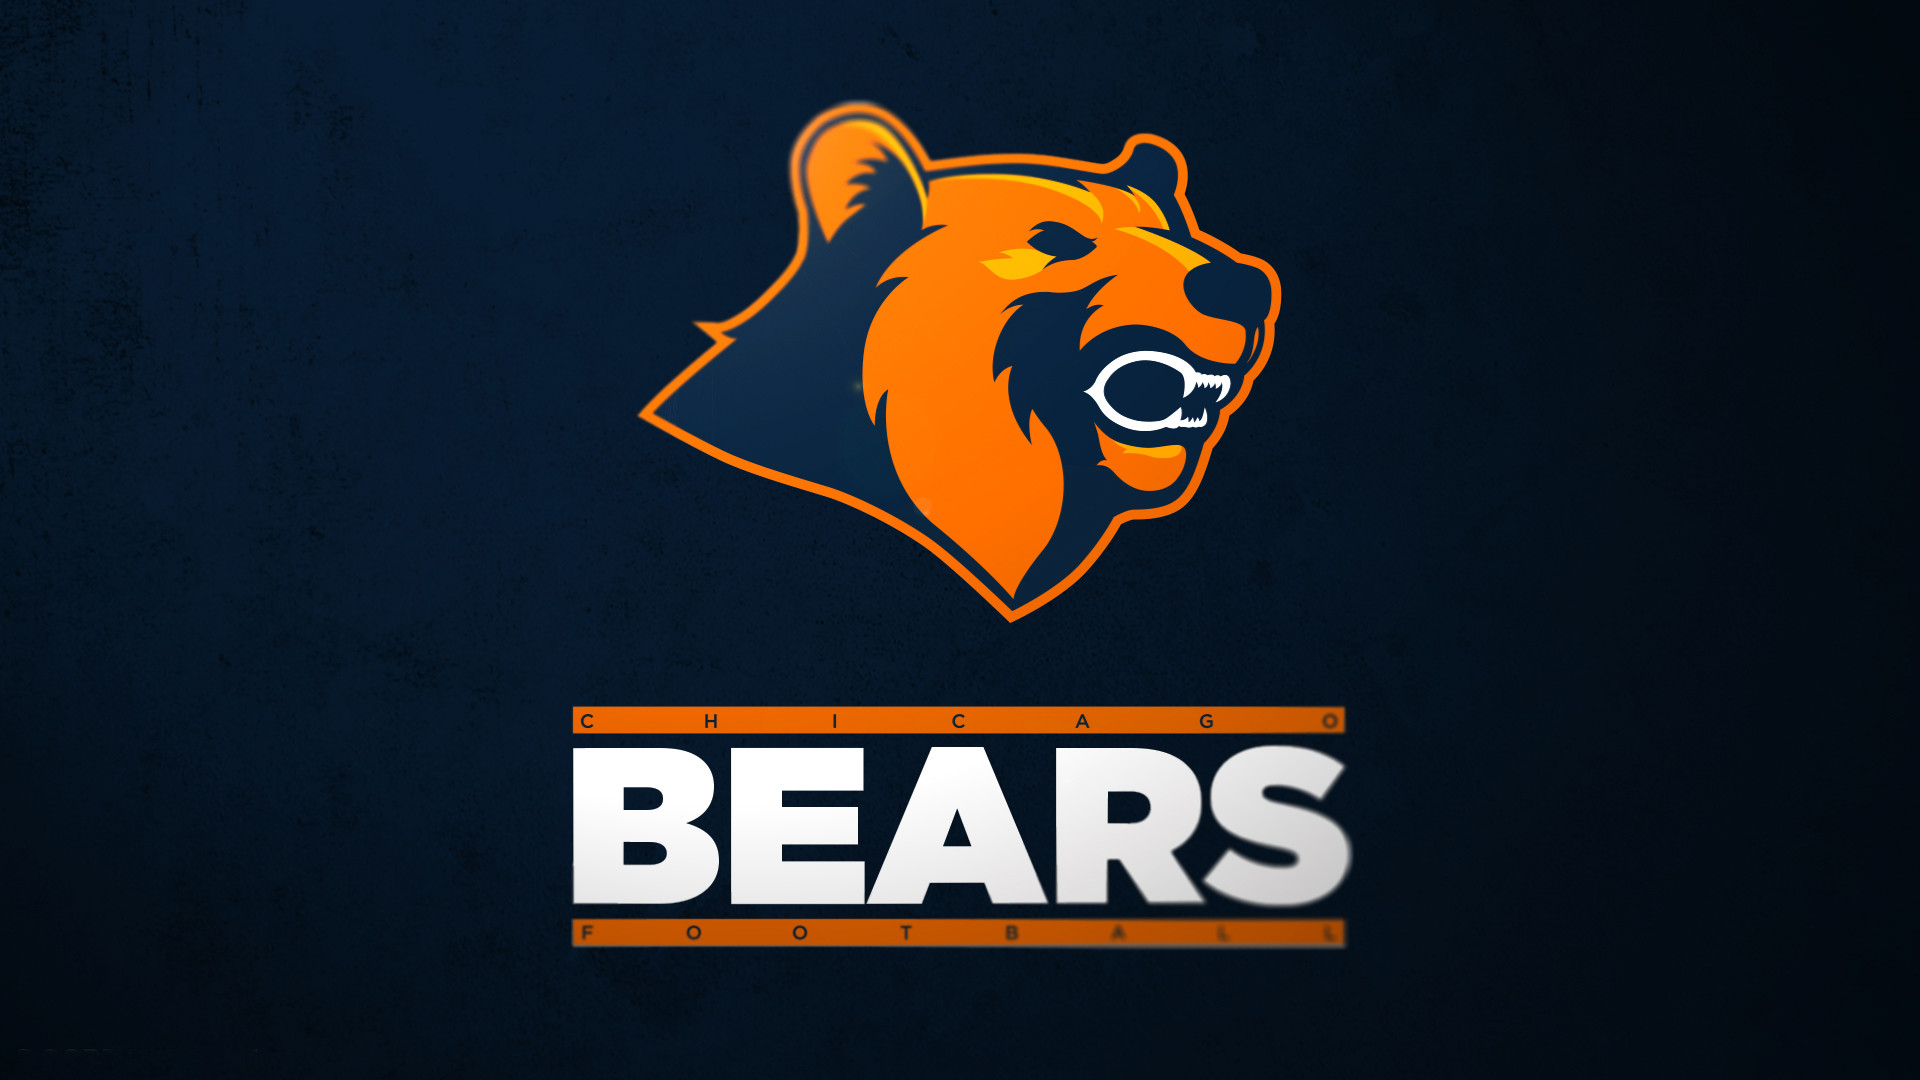 1920x1080 Download Fullsize Image · NFCN Chicago BEARS LOGO Wallpaper NFL ...